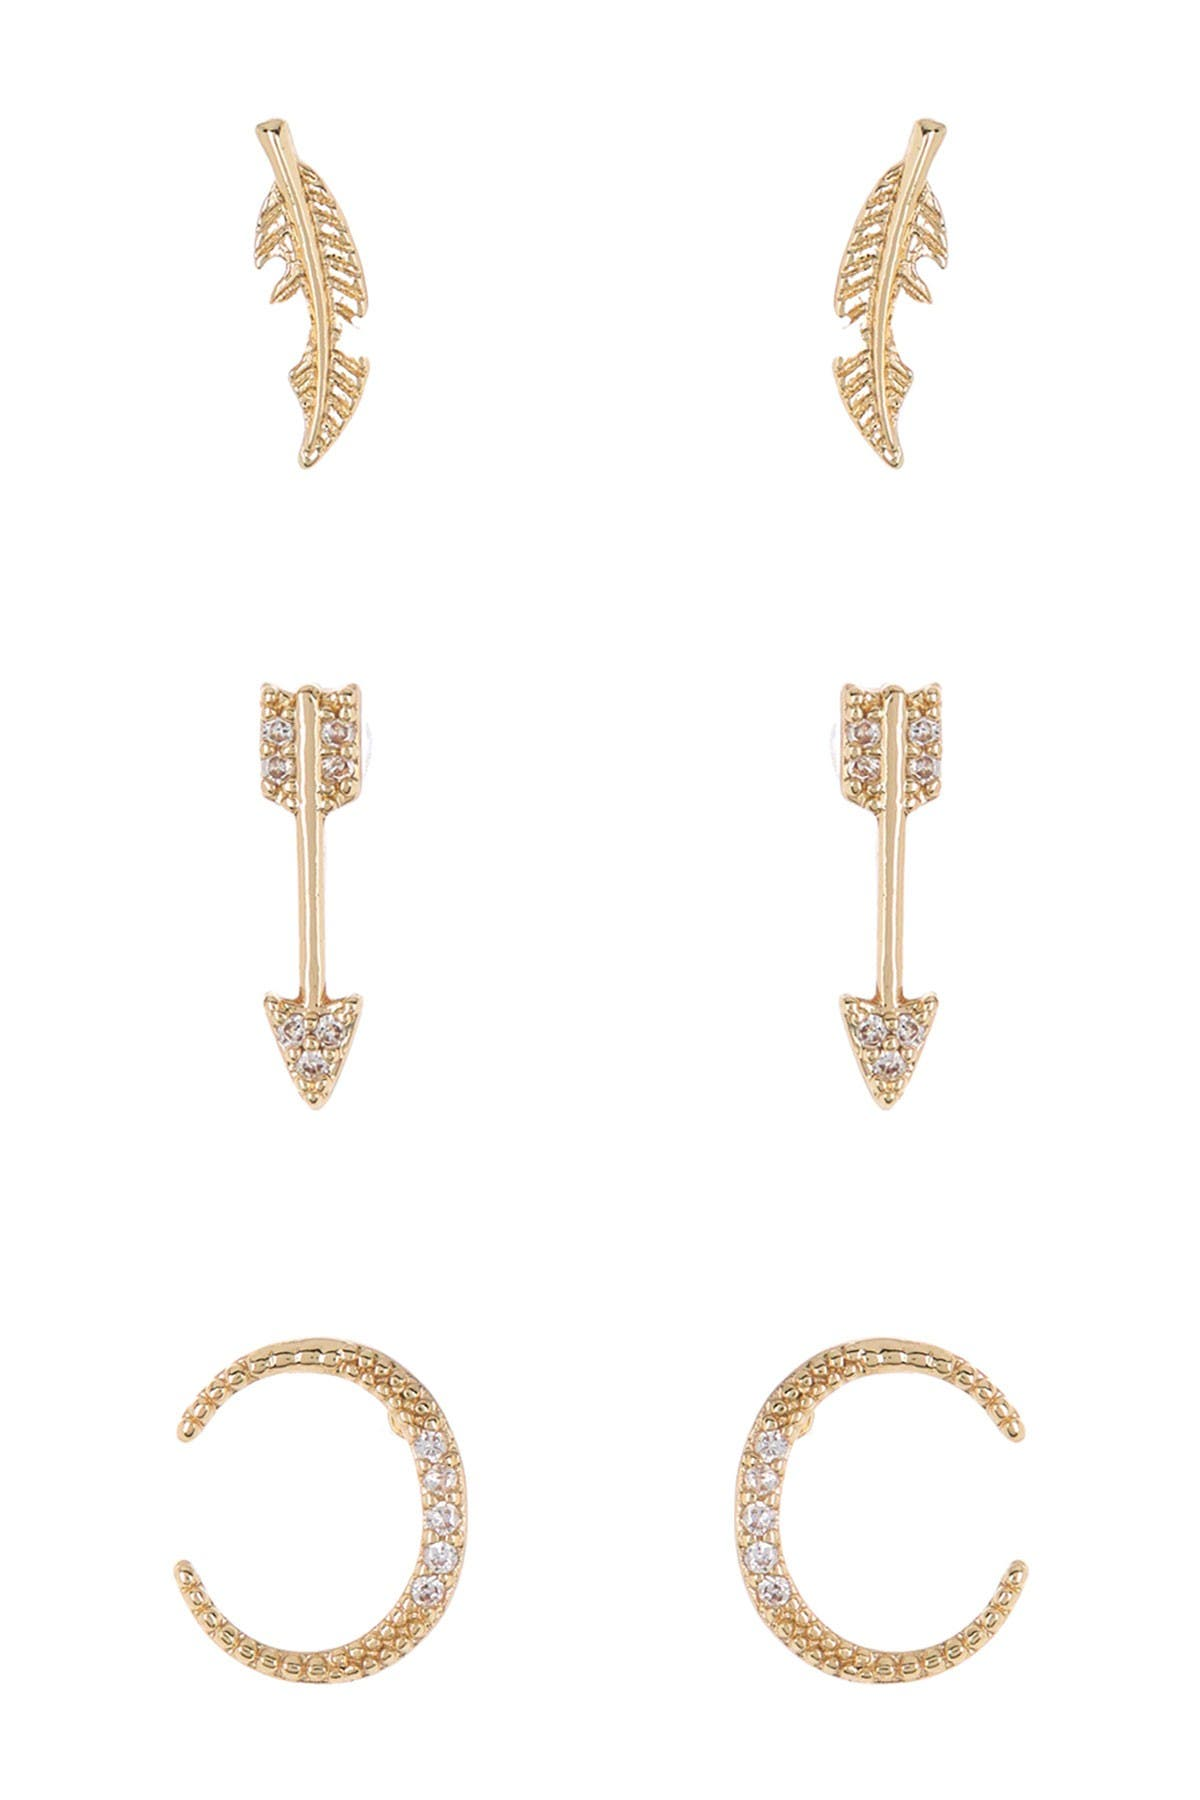 Image of Loren Olivia 14K Yellow Gold Plated Brass Arrow Stud Earrings - Set of 3